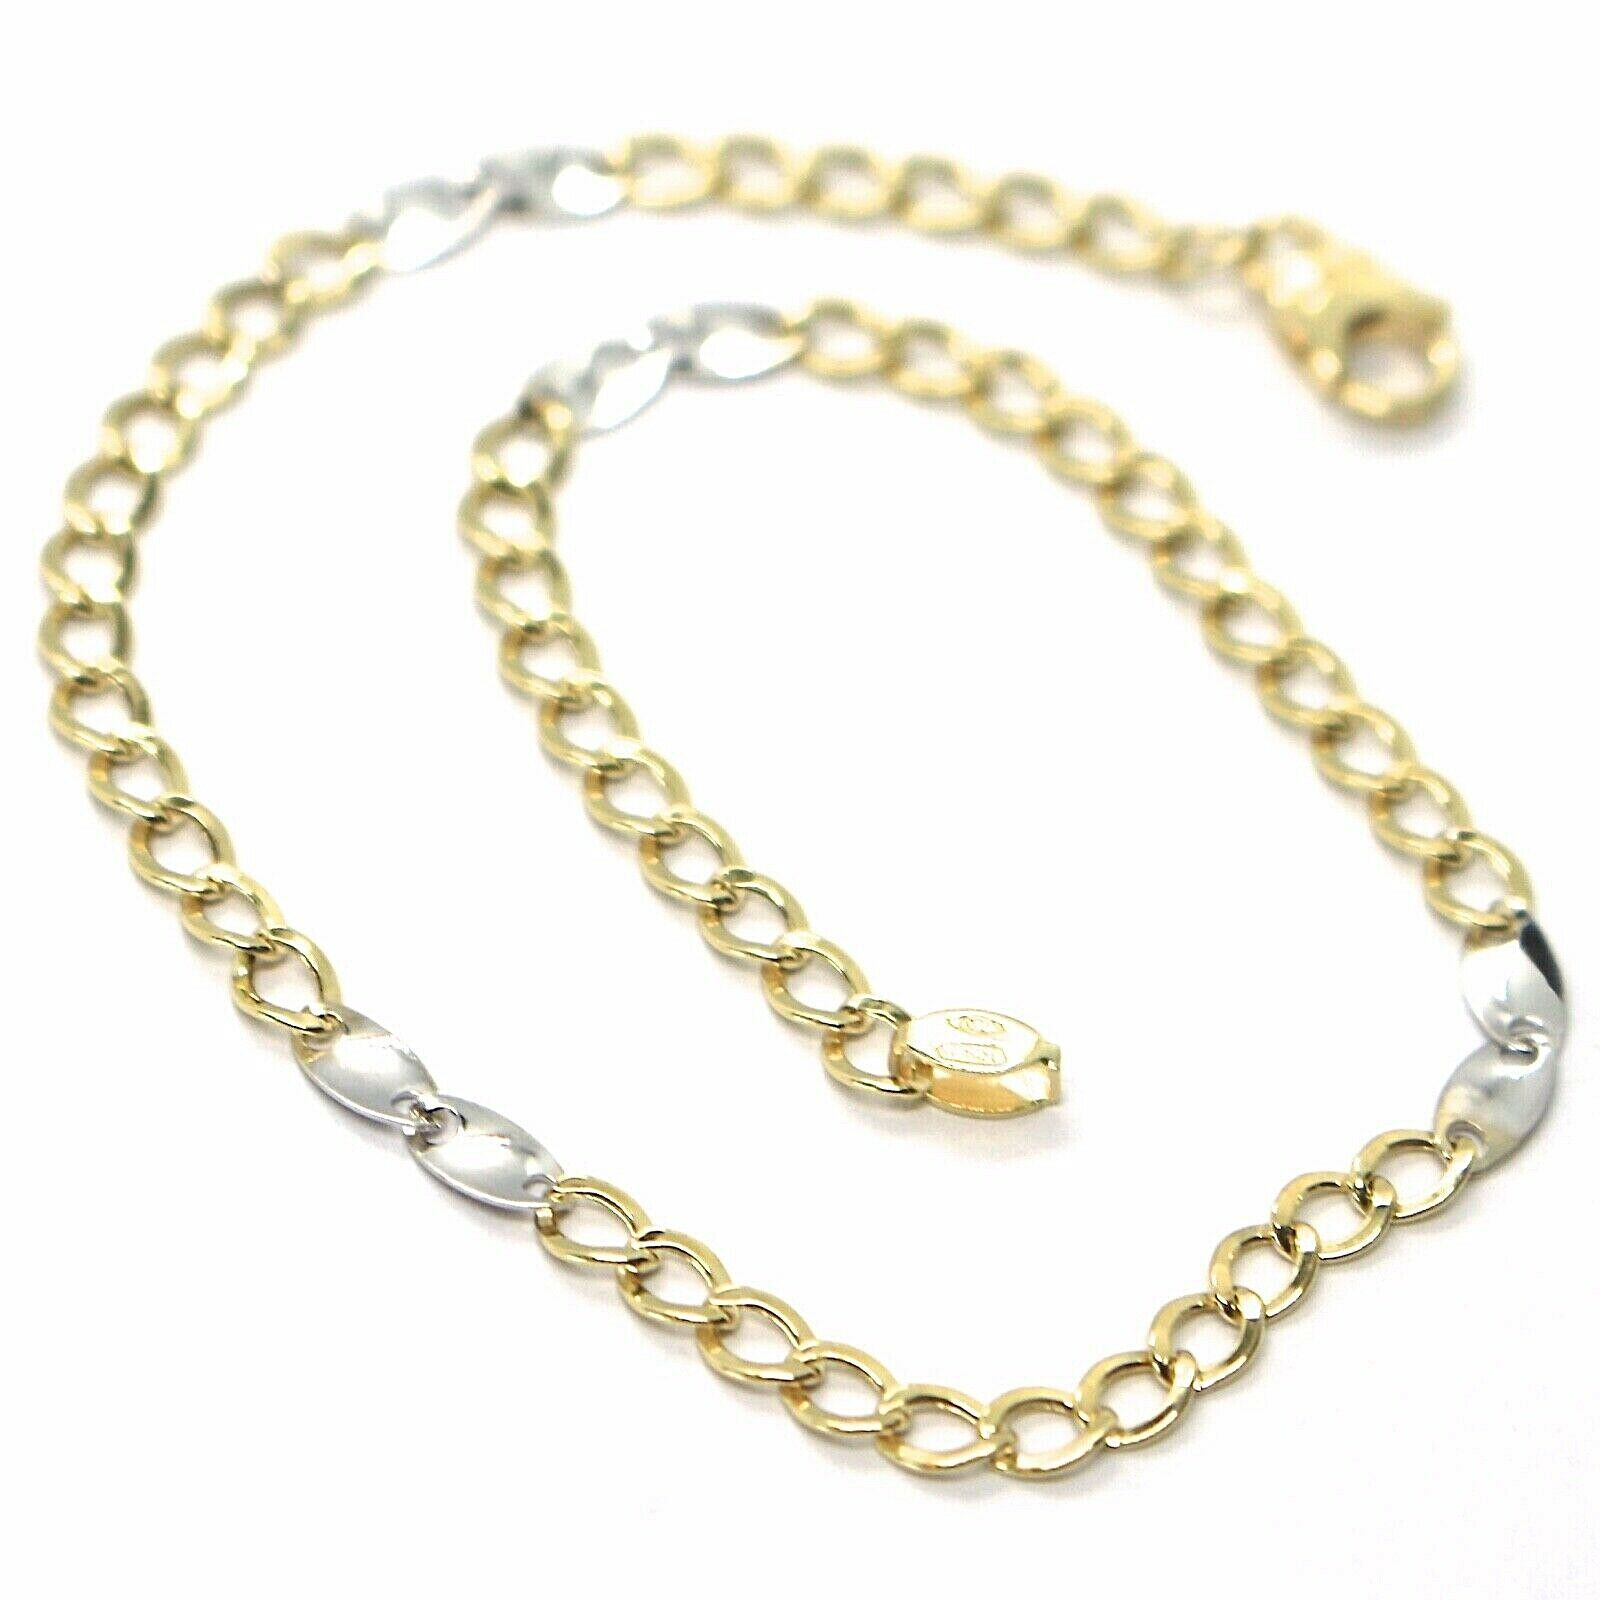 Bracelet Yellow and White Gold 18K 750, Curb and Double Ovals Alternating, 3 MM